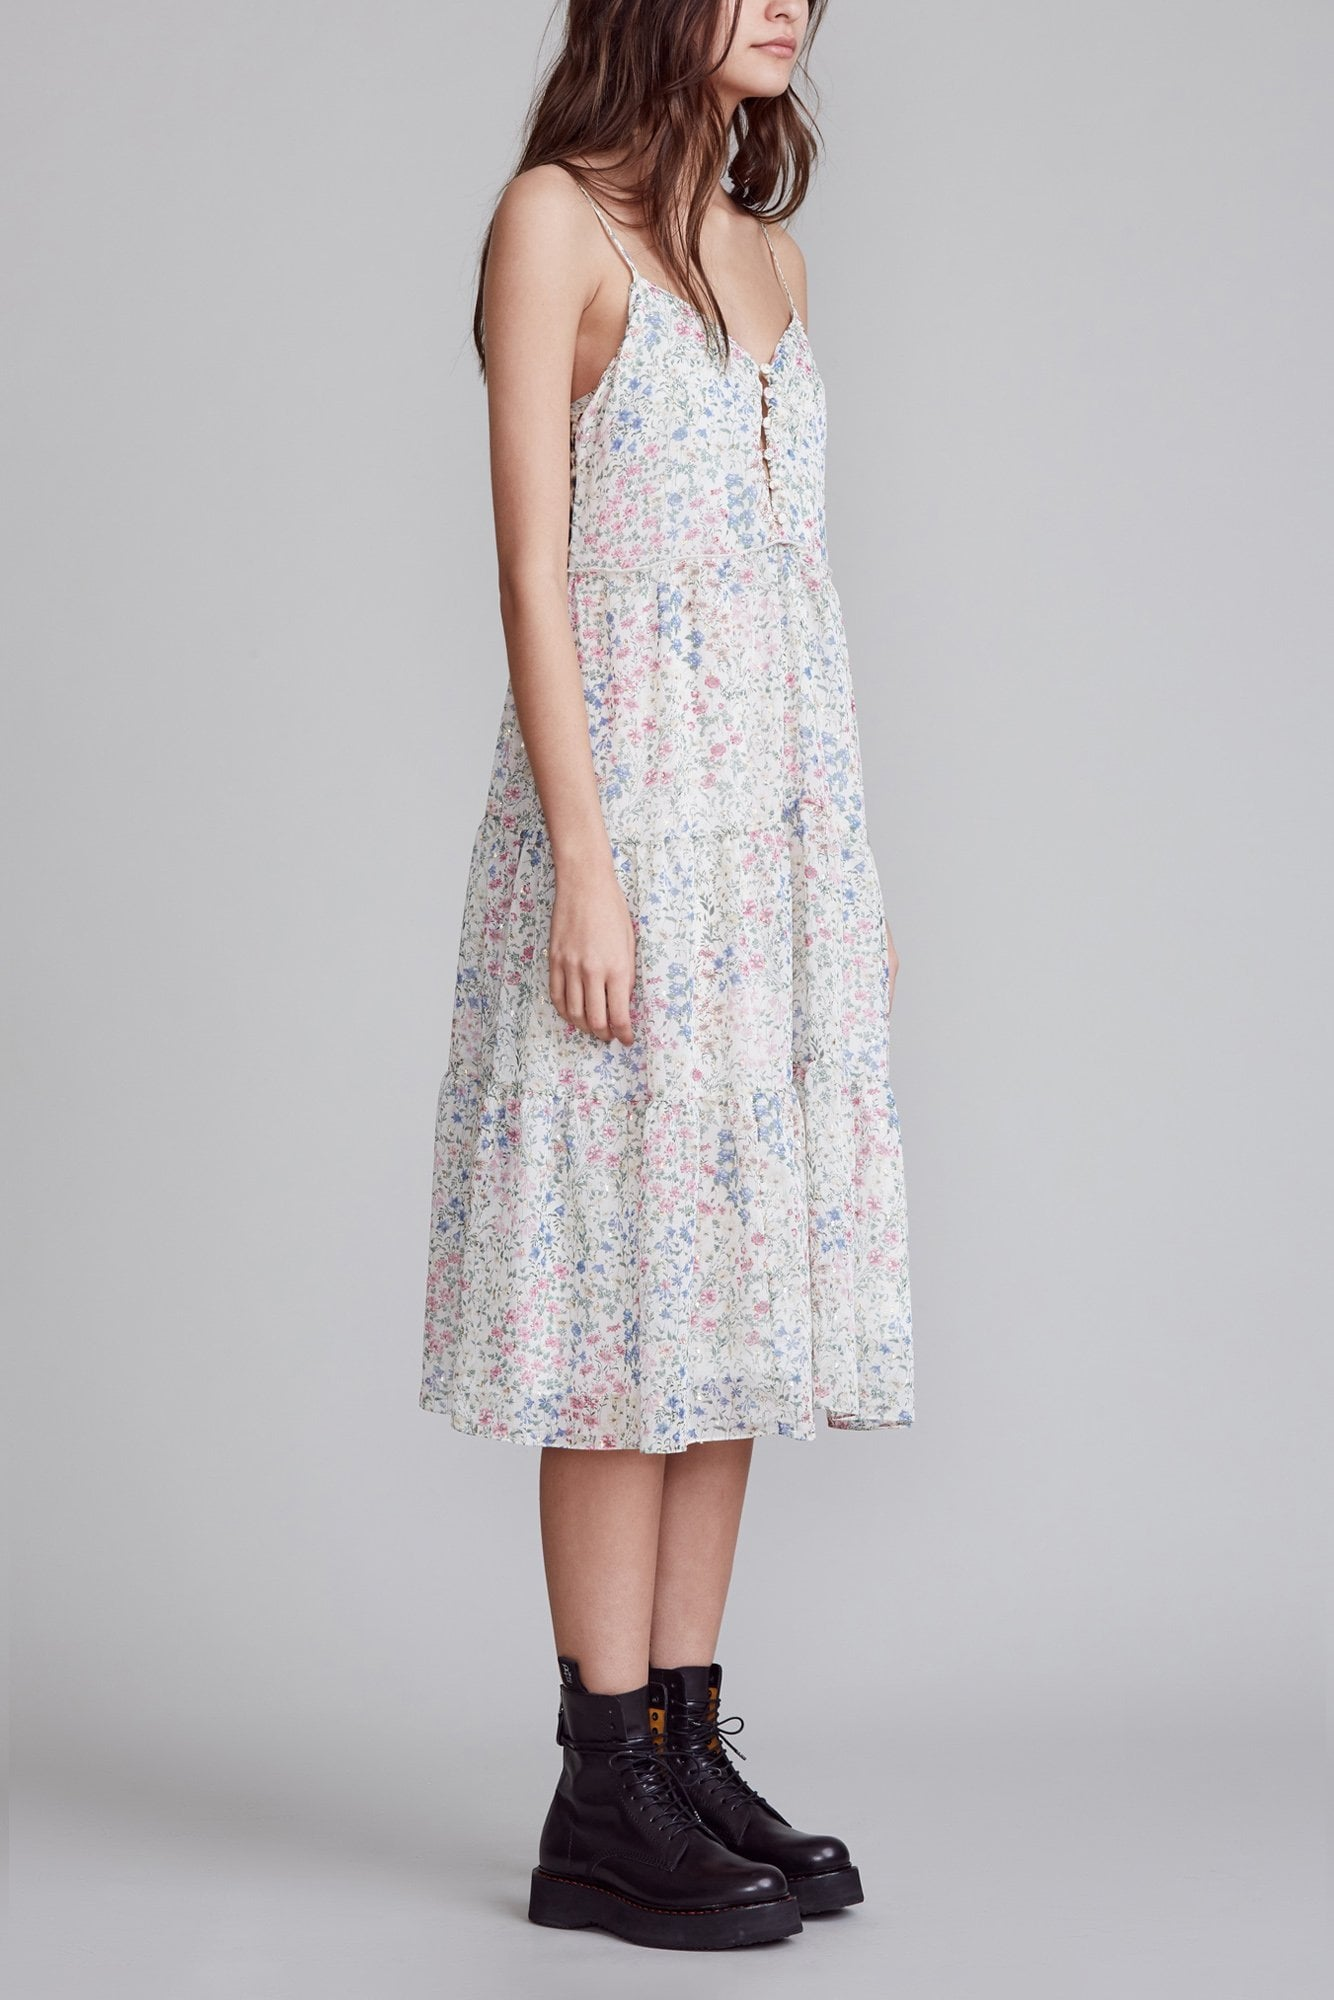 Midi Tiered Slip - Ecru Floral with Leopard